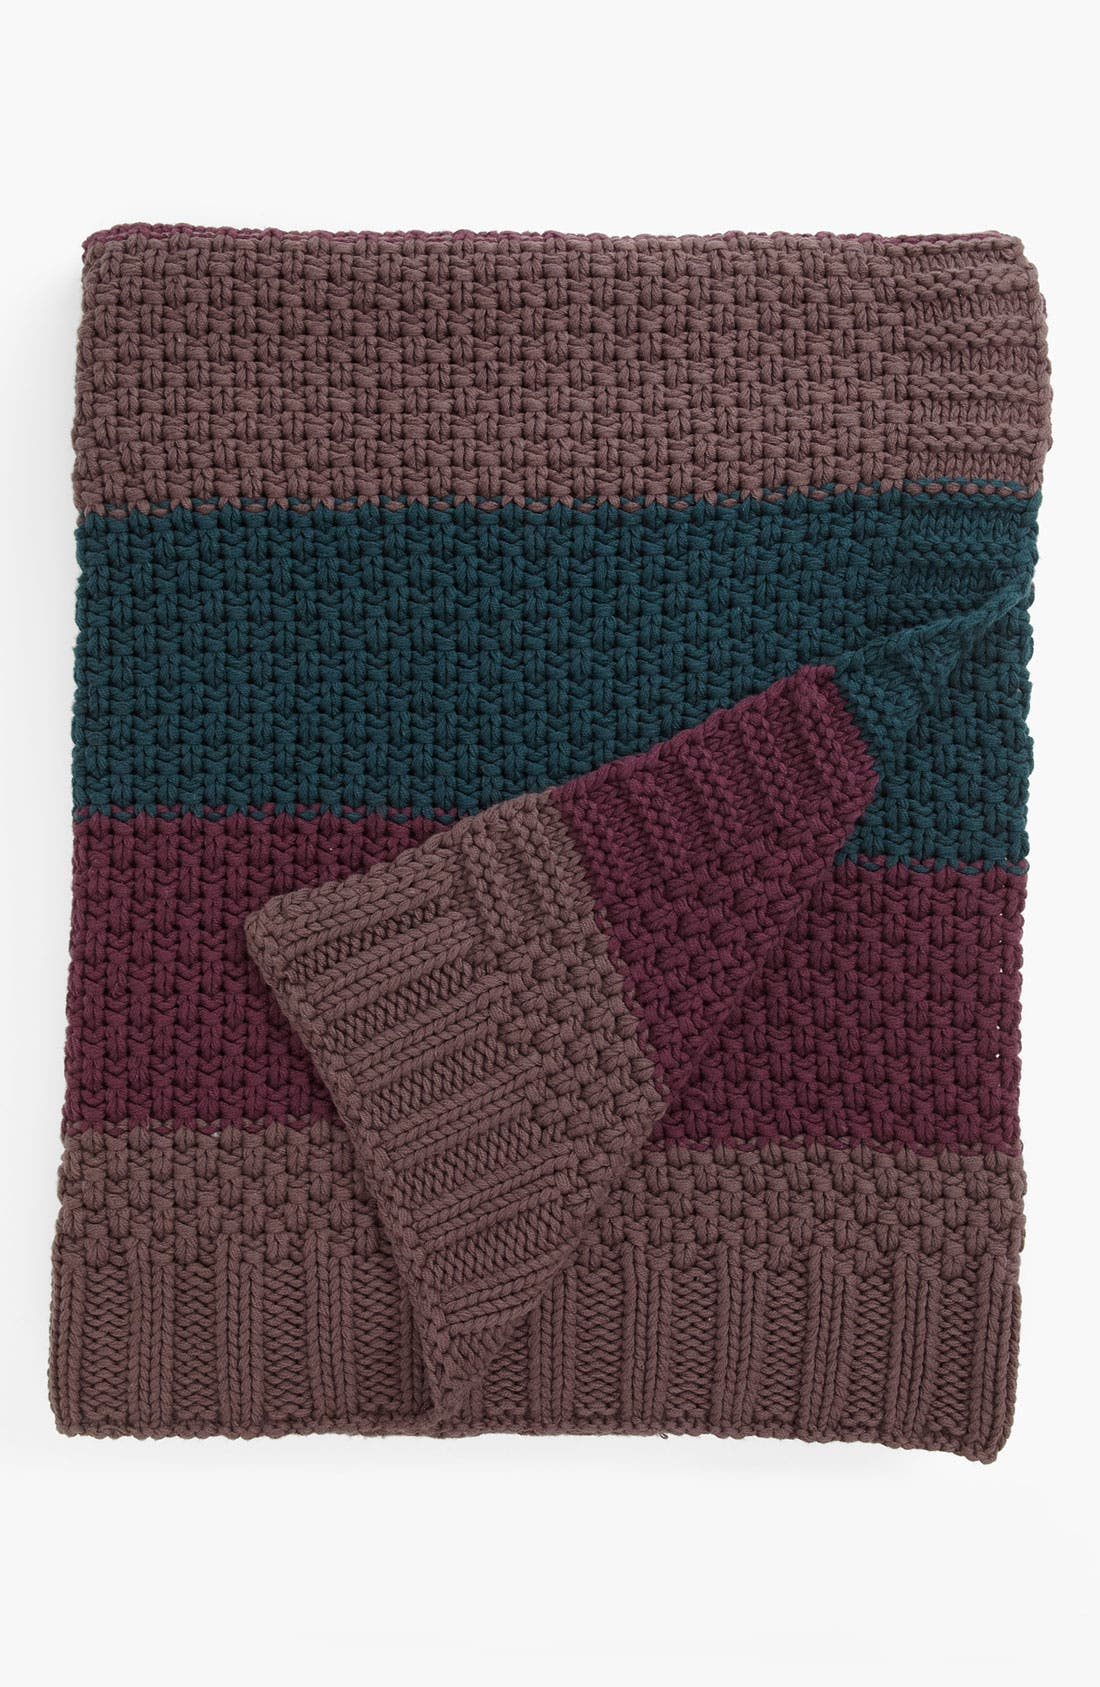 Alternate Image 1 Selected - Nordstrom at Home 'Grand' Knit Throw